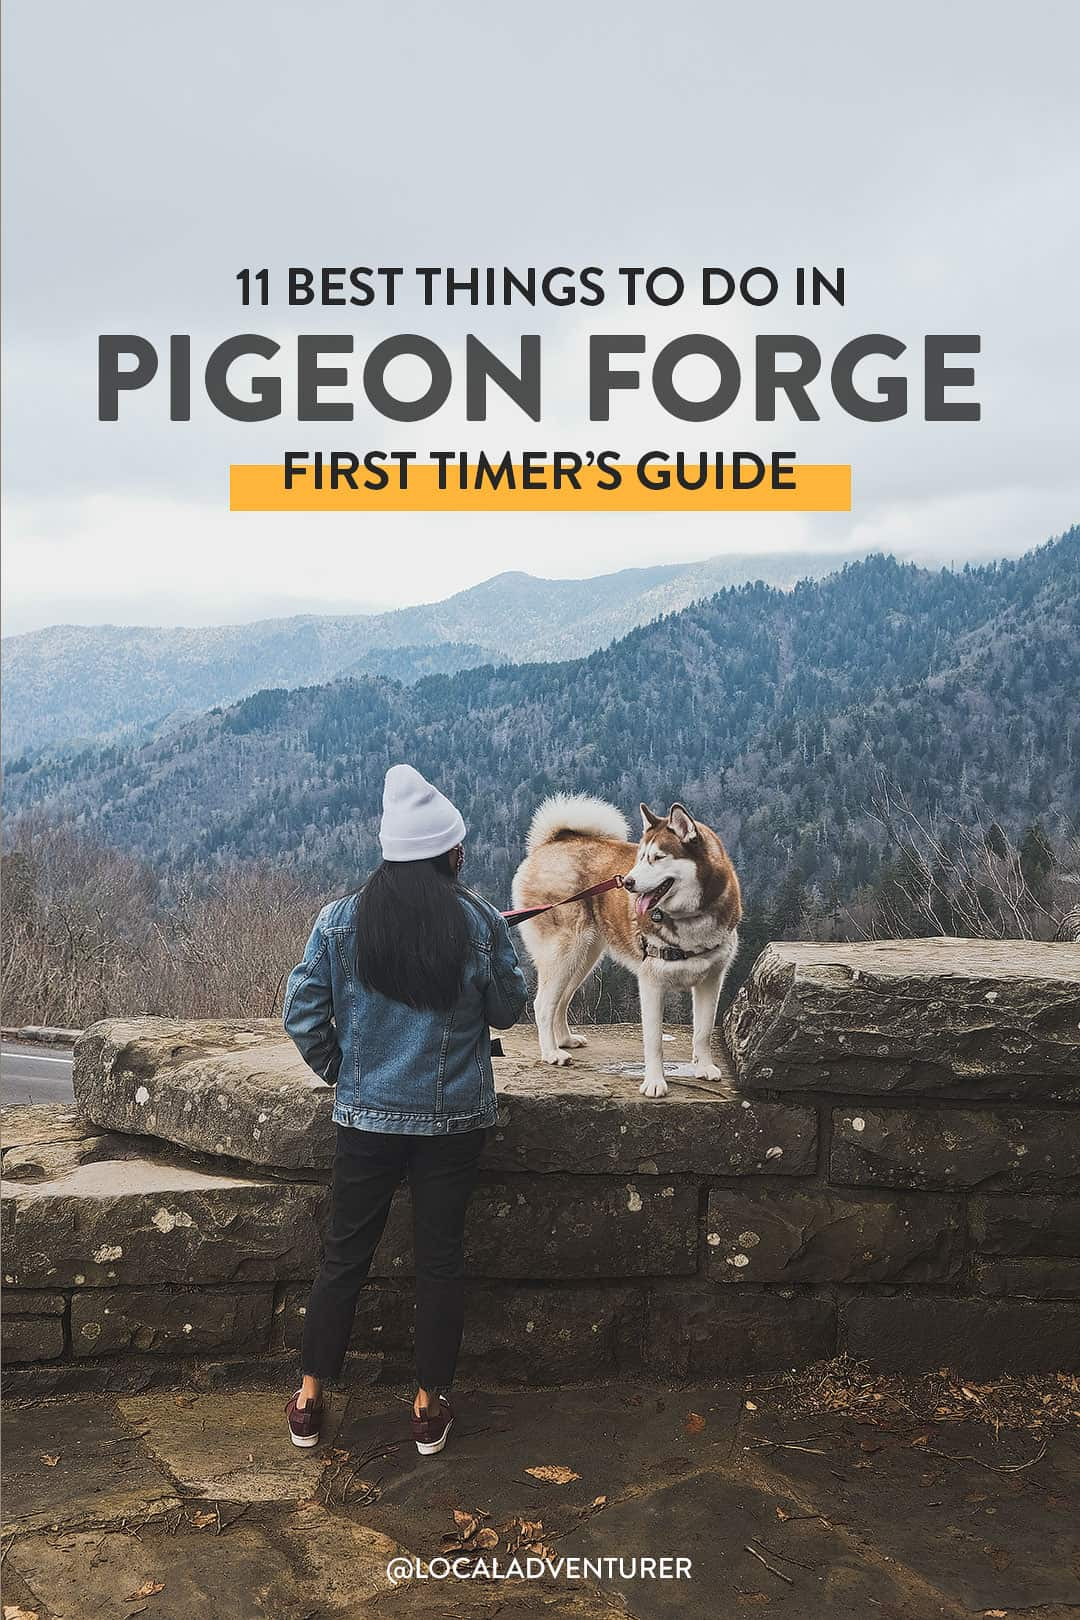 11 Best Things to Do in Pigeon Forge on Your First Visit